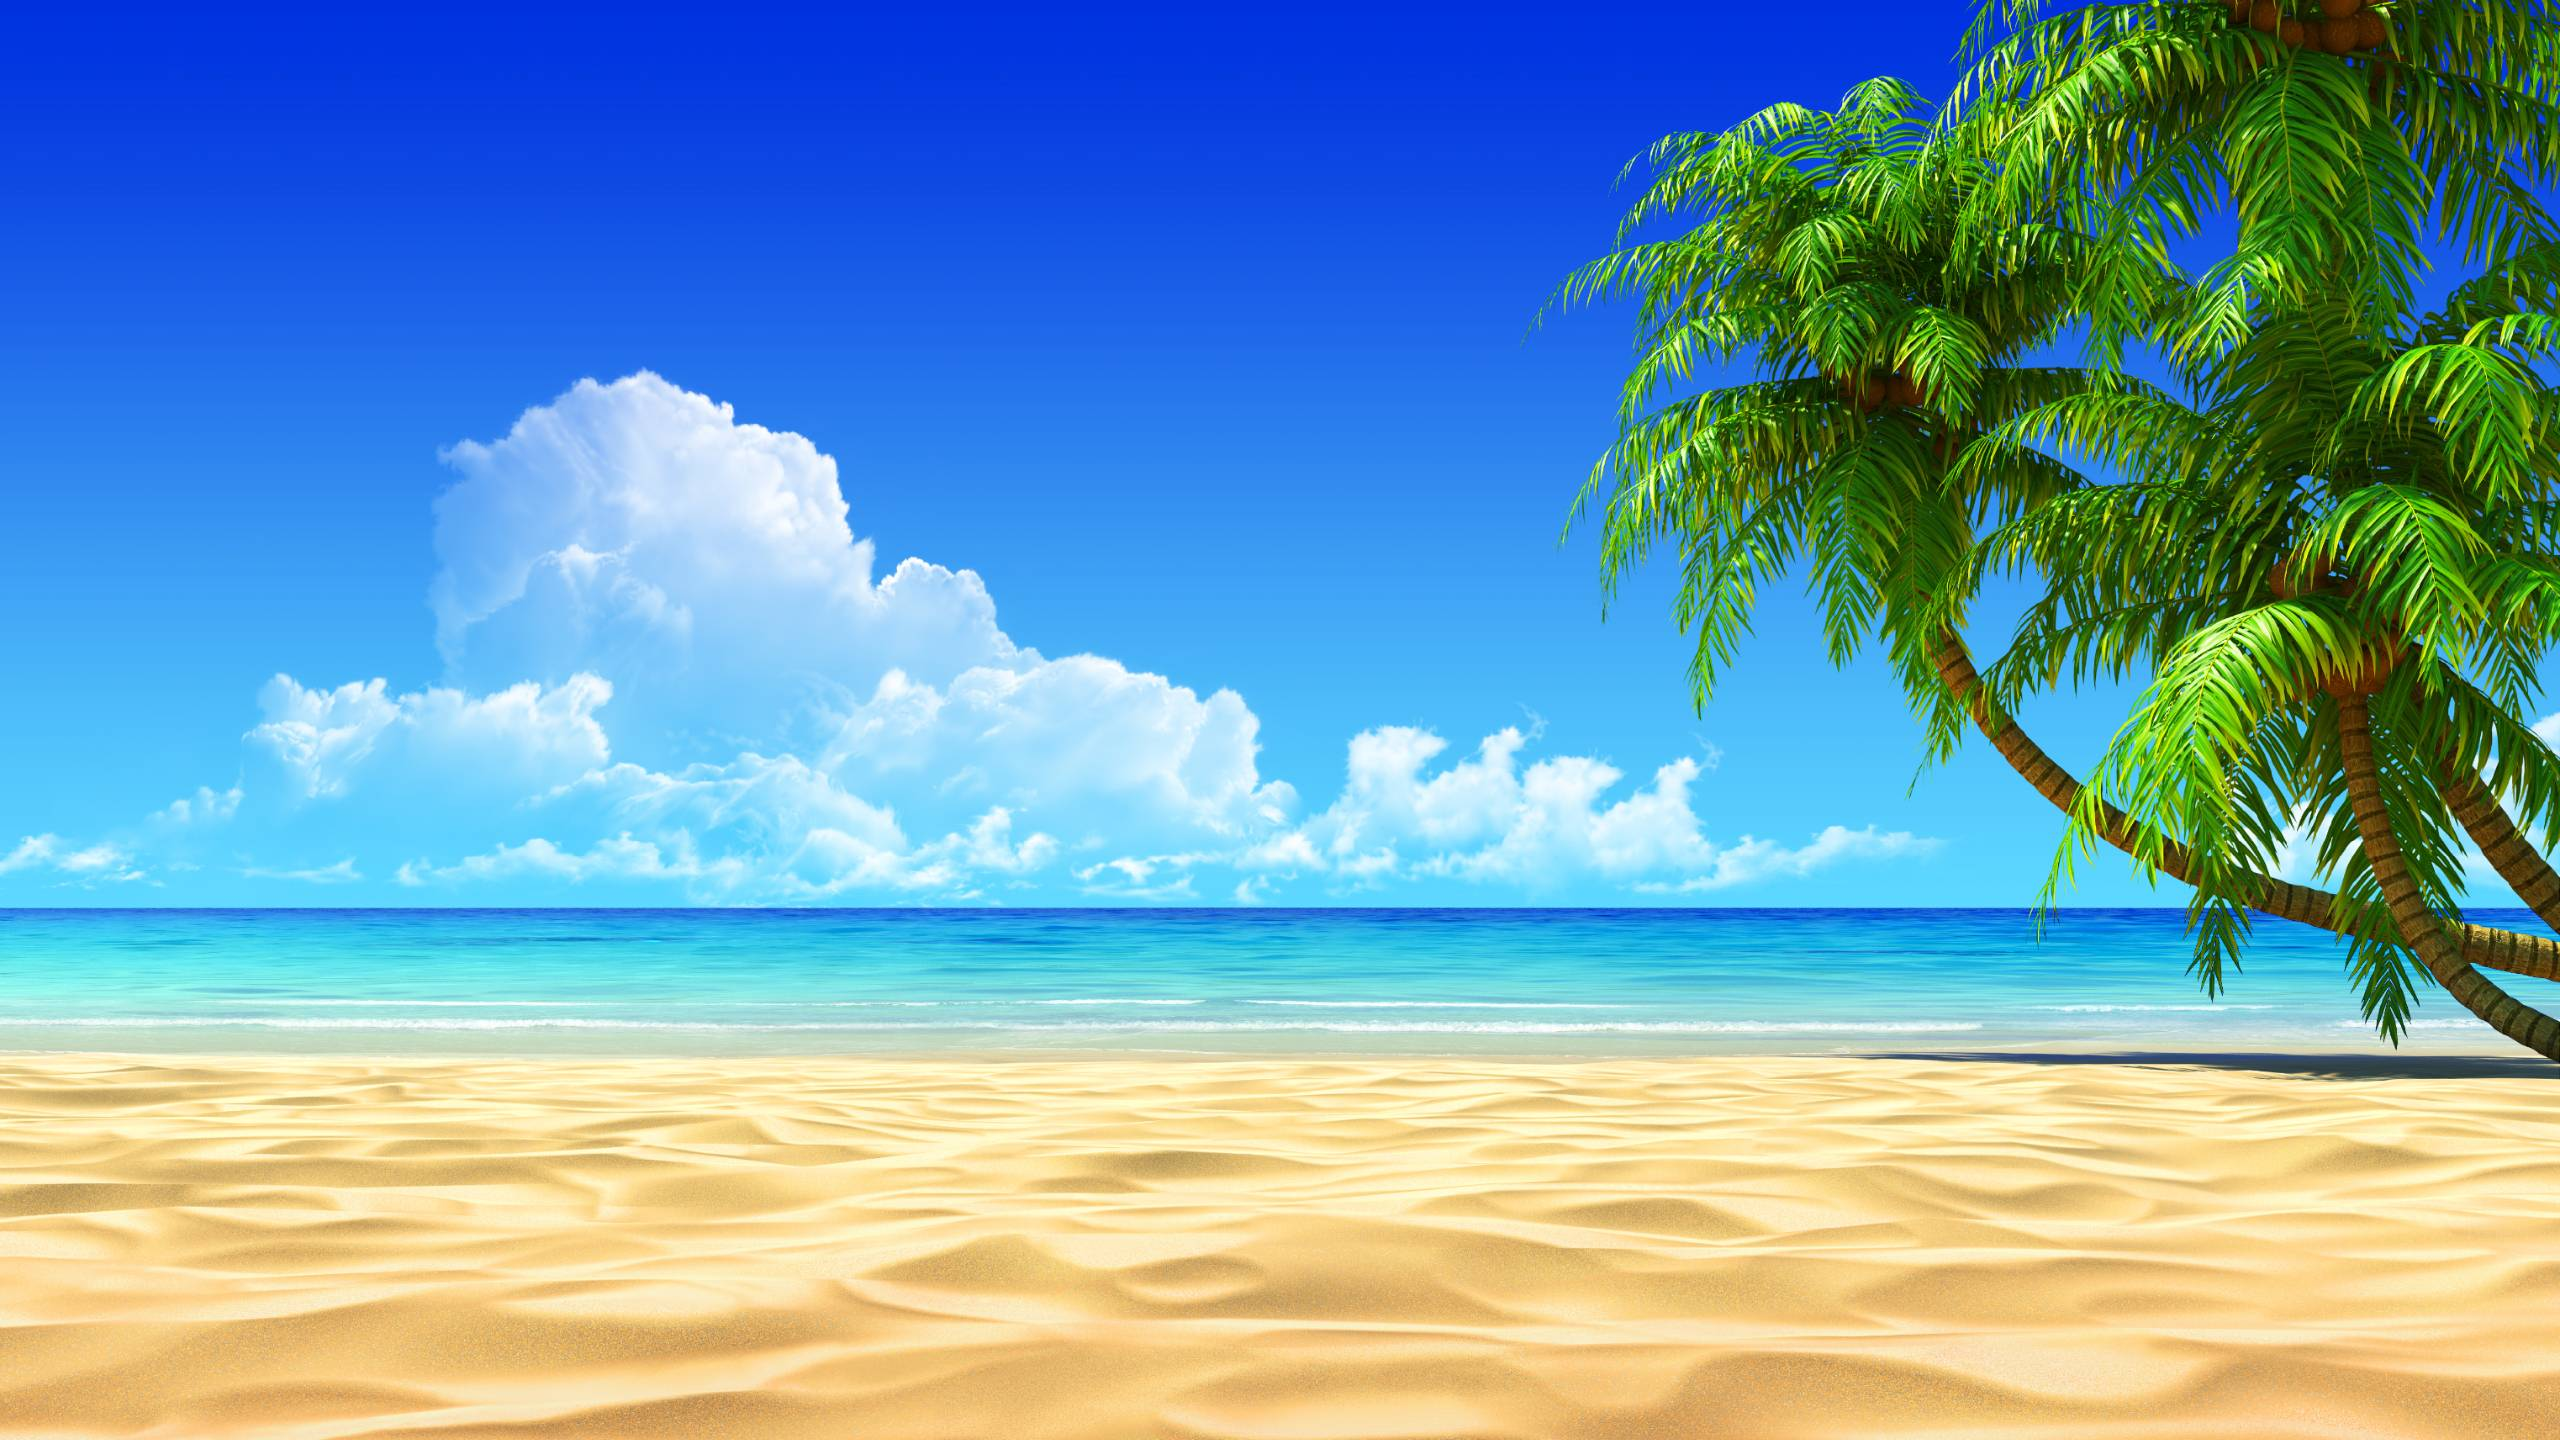 HD Tropical Wallpapers  Tropical Best Pictures Collection 2560x1440